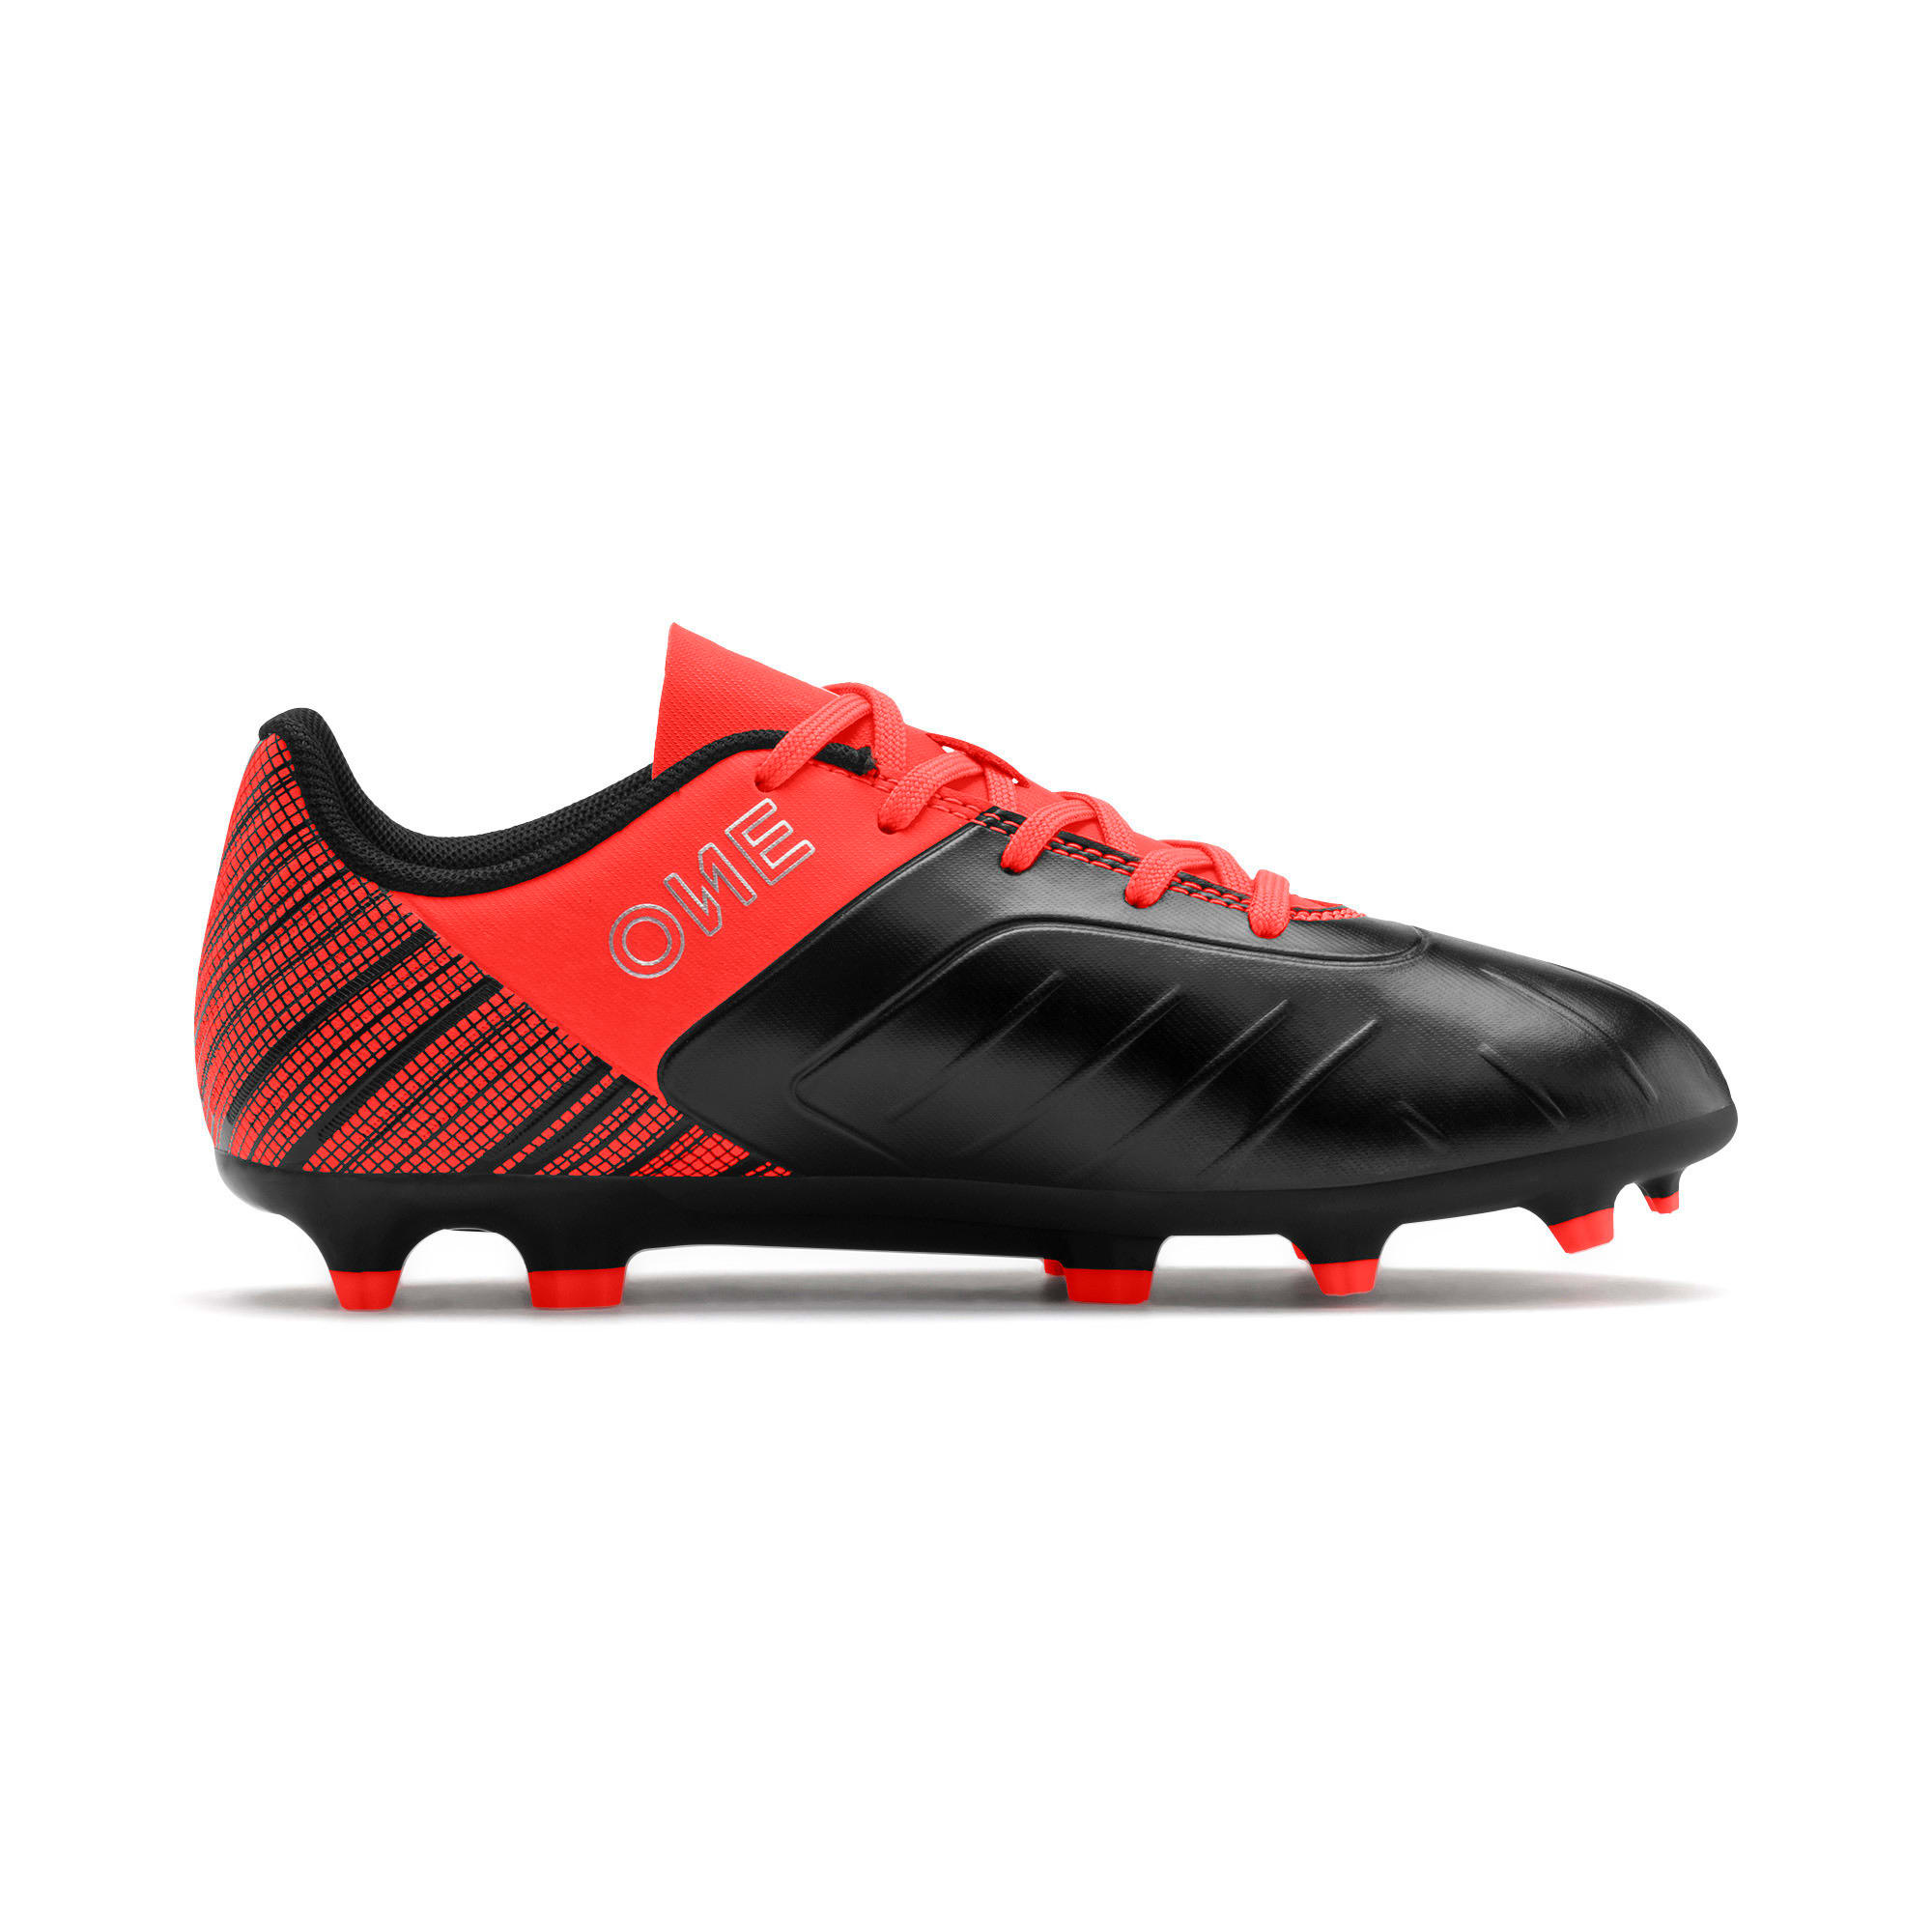 Thumbnail 5 of PUMA ONE 5.4 IT voetbalschoenen voor jongeren, Black-Nrgy Red-Aged Silver, medium